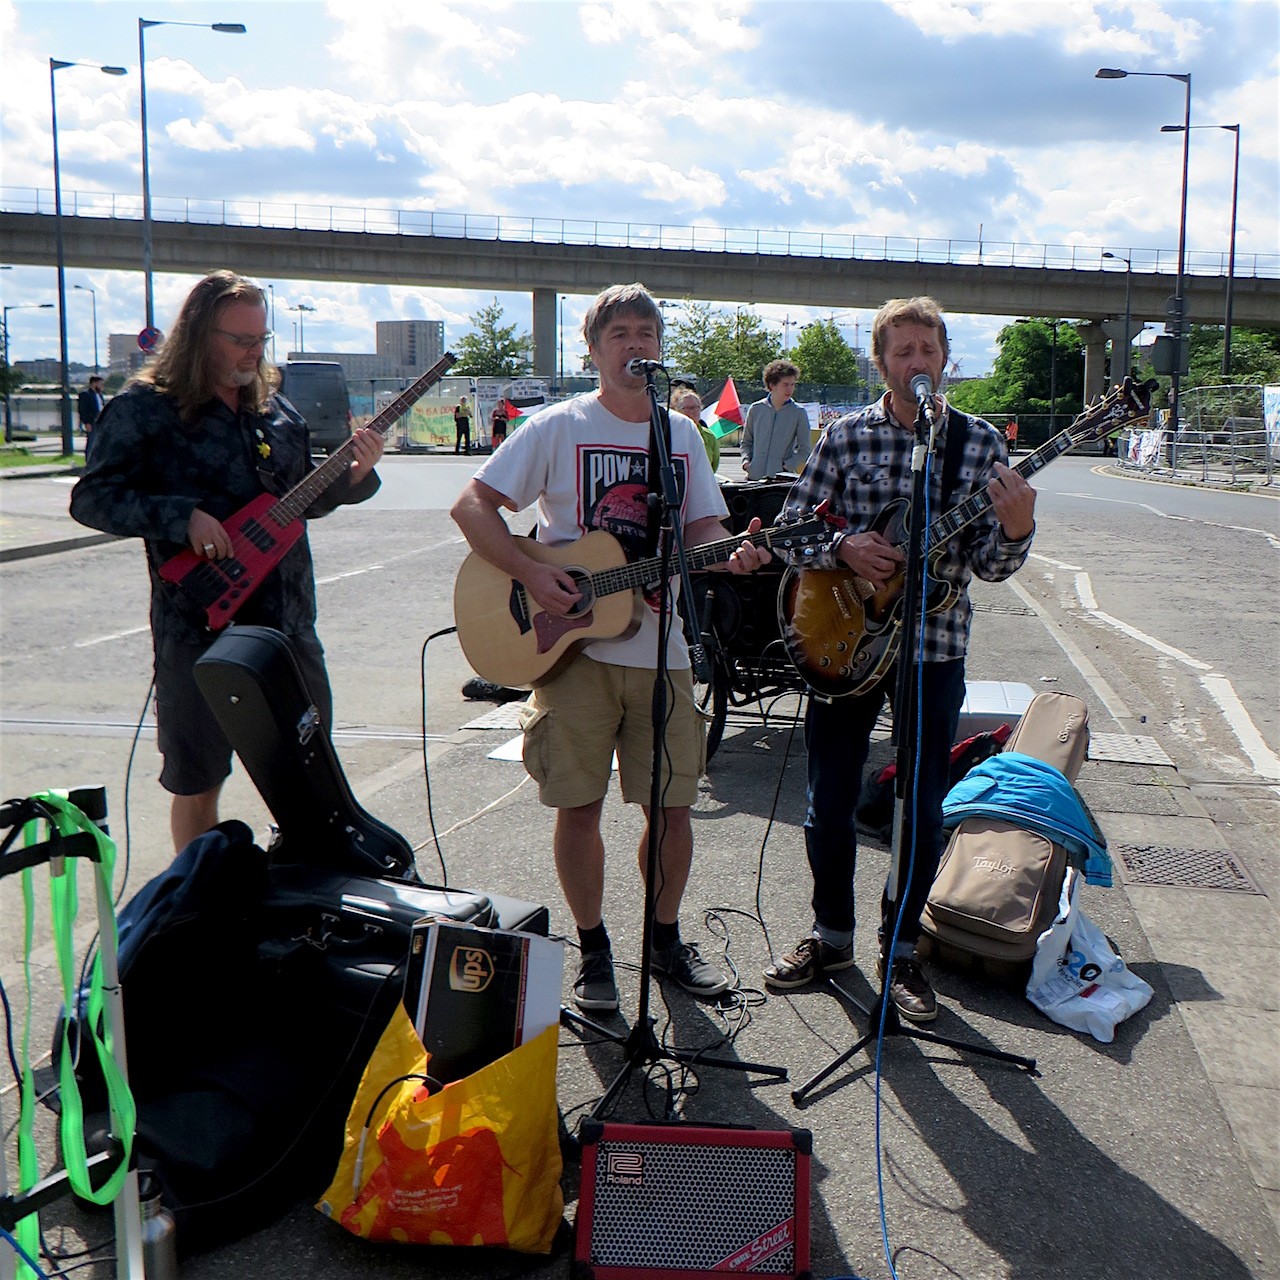 Mark Quiney, Andy Worthington and Richard Clare of The Four Fathers playing at a protest against the DSEI arms fair in London's Docklands in September 2017.